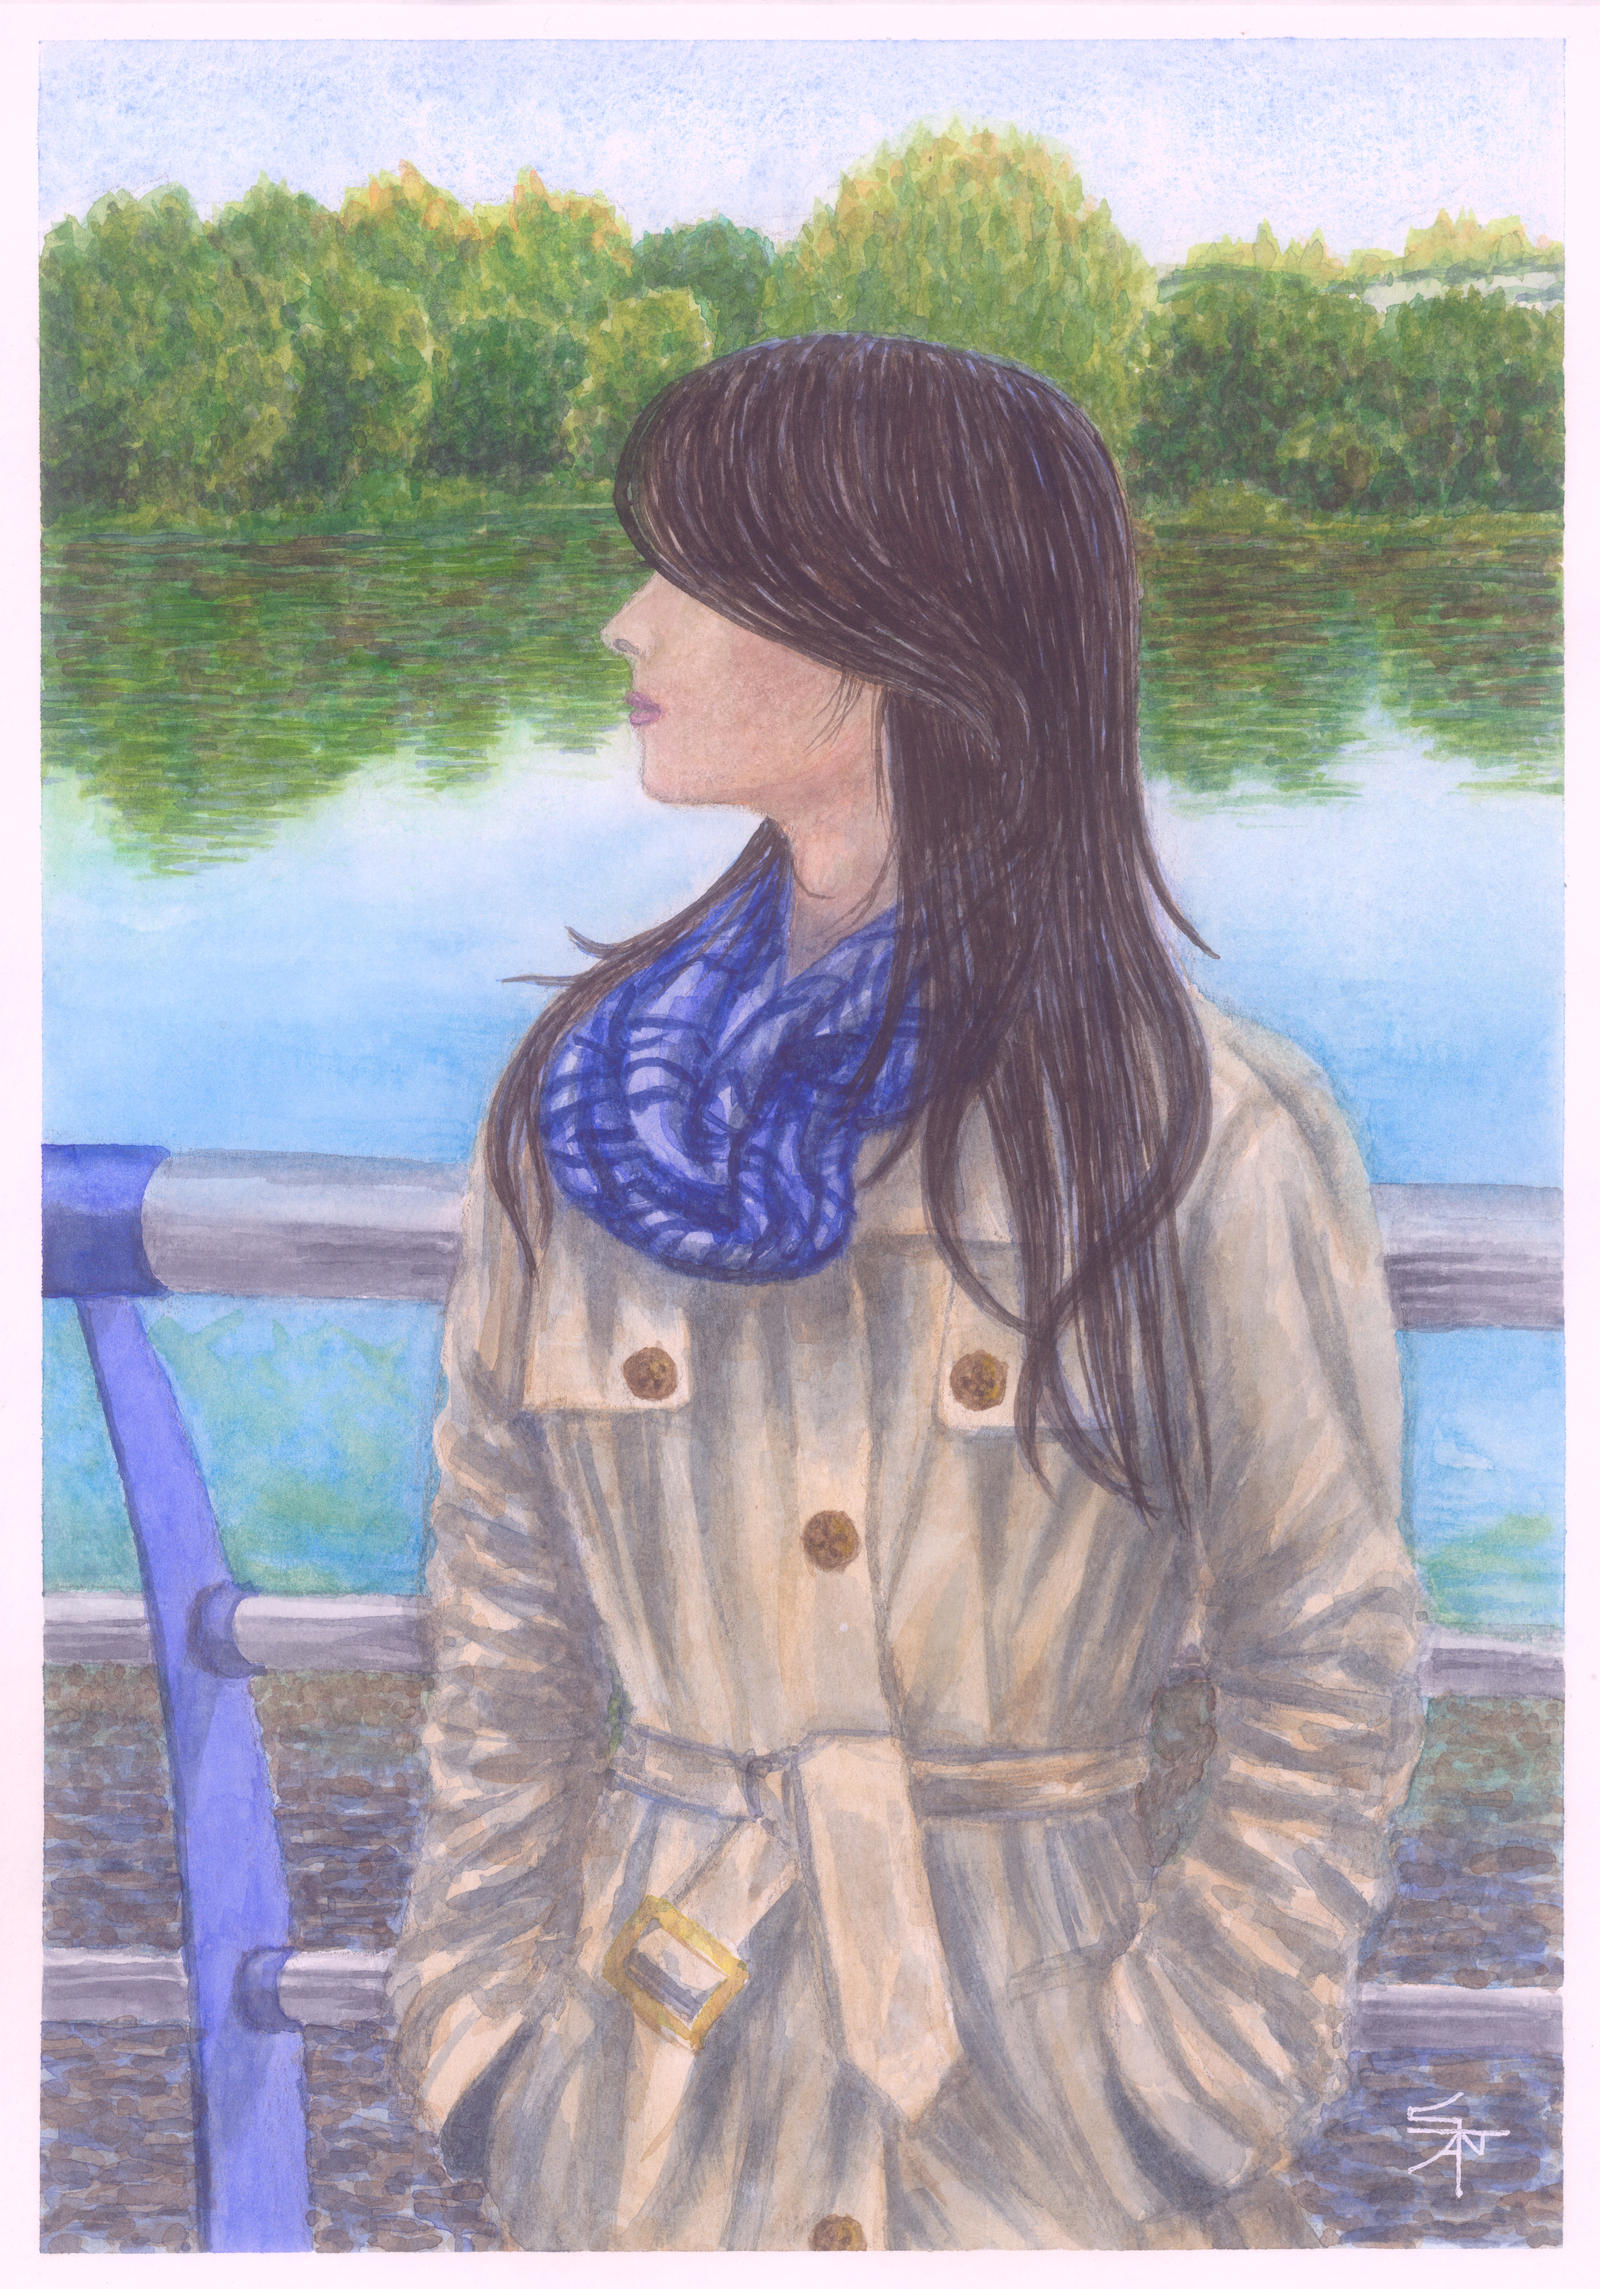 Mysterious girl in front of the river by Cancer--chan on